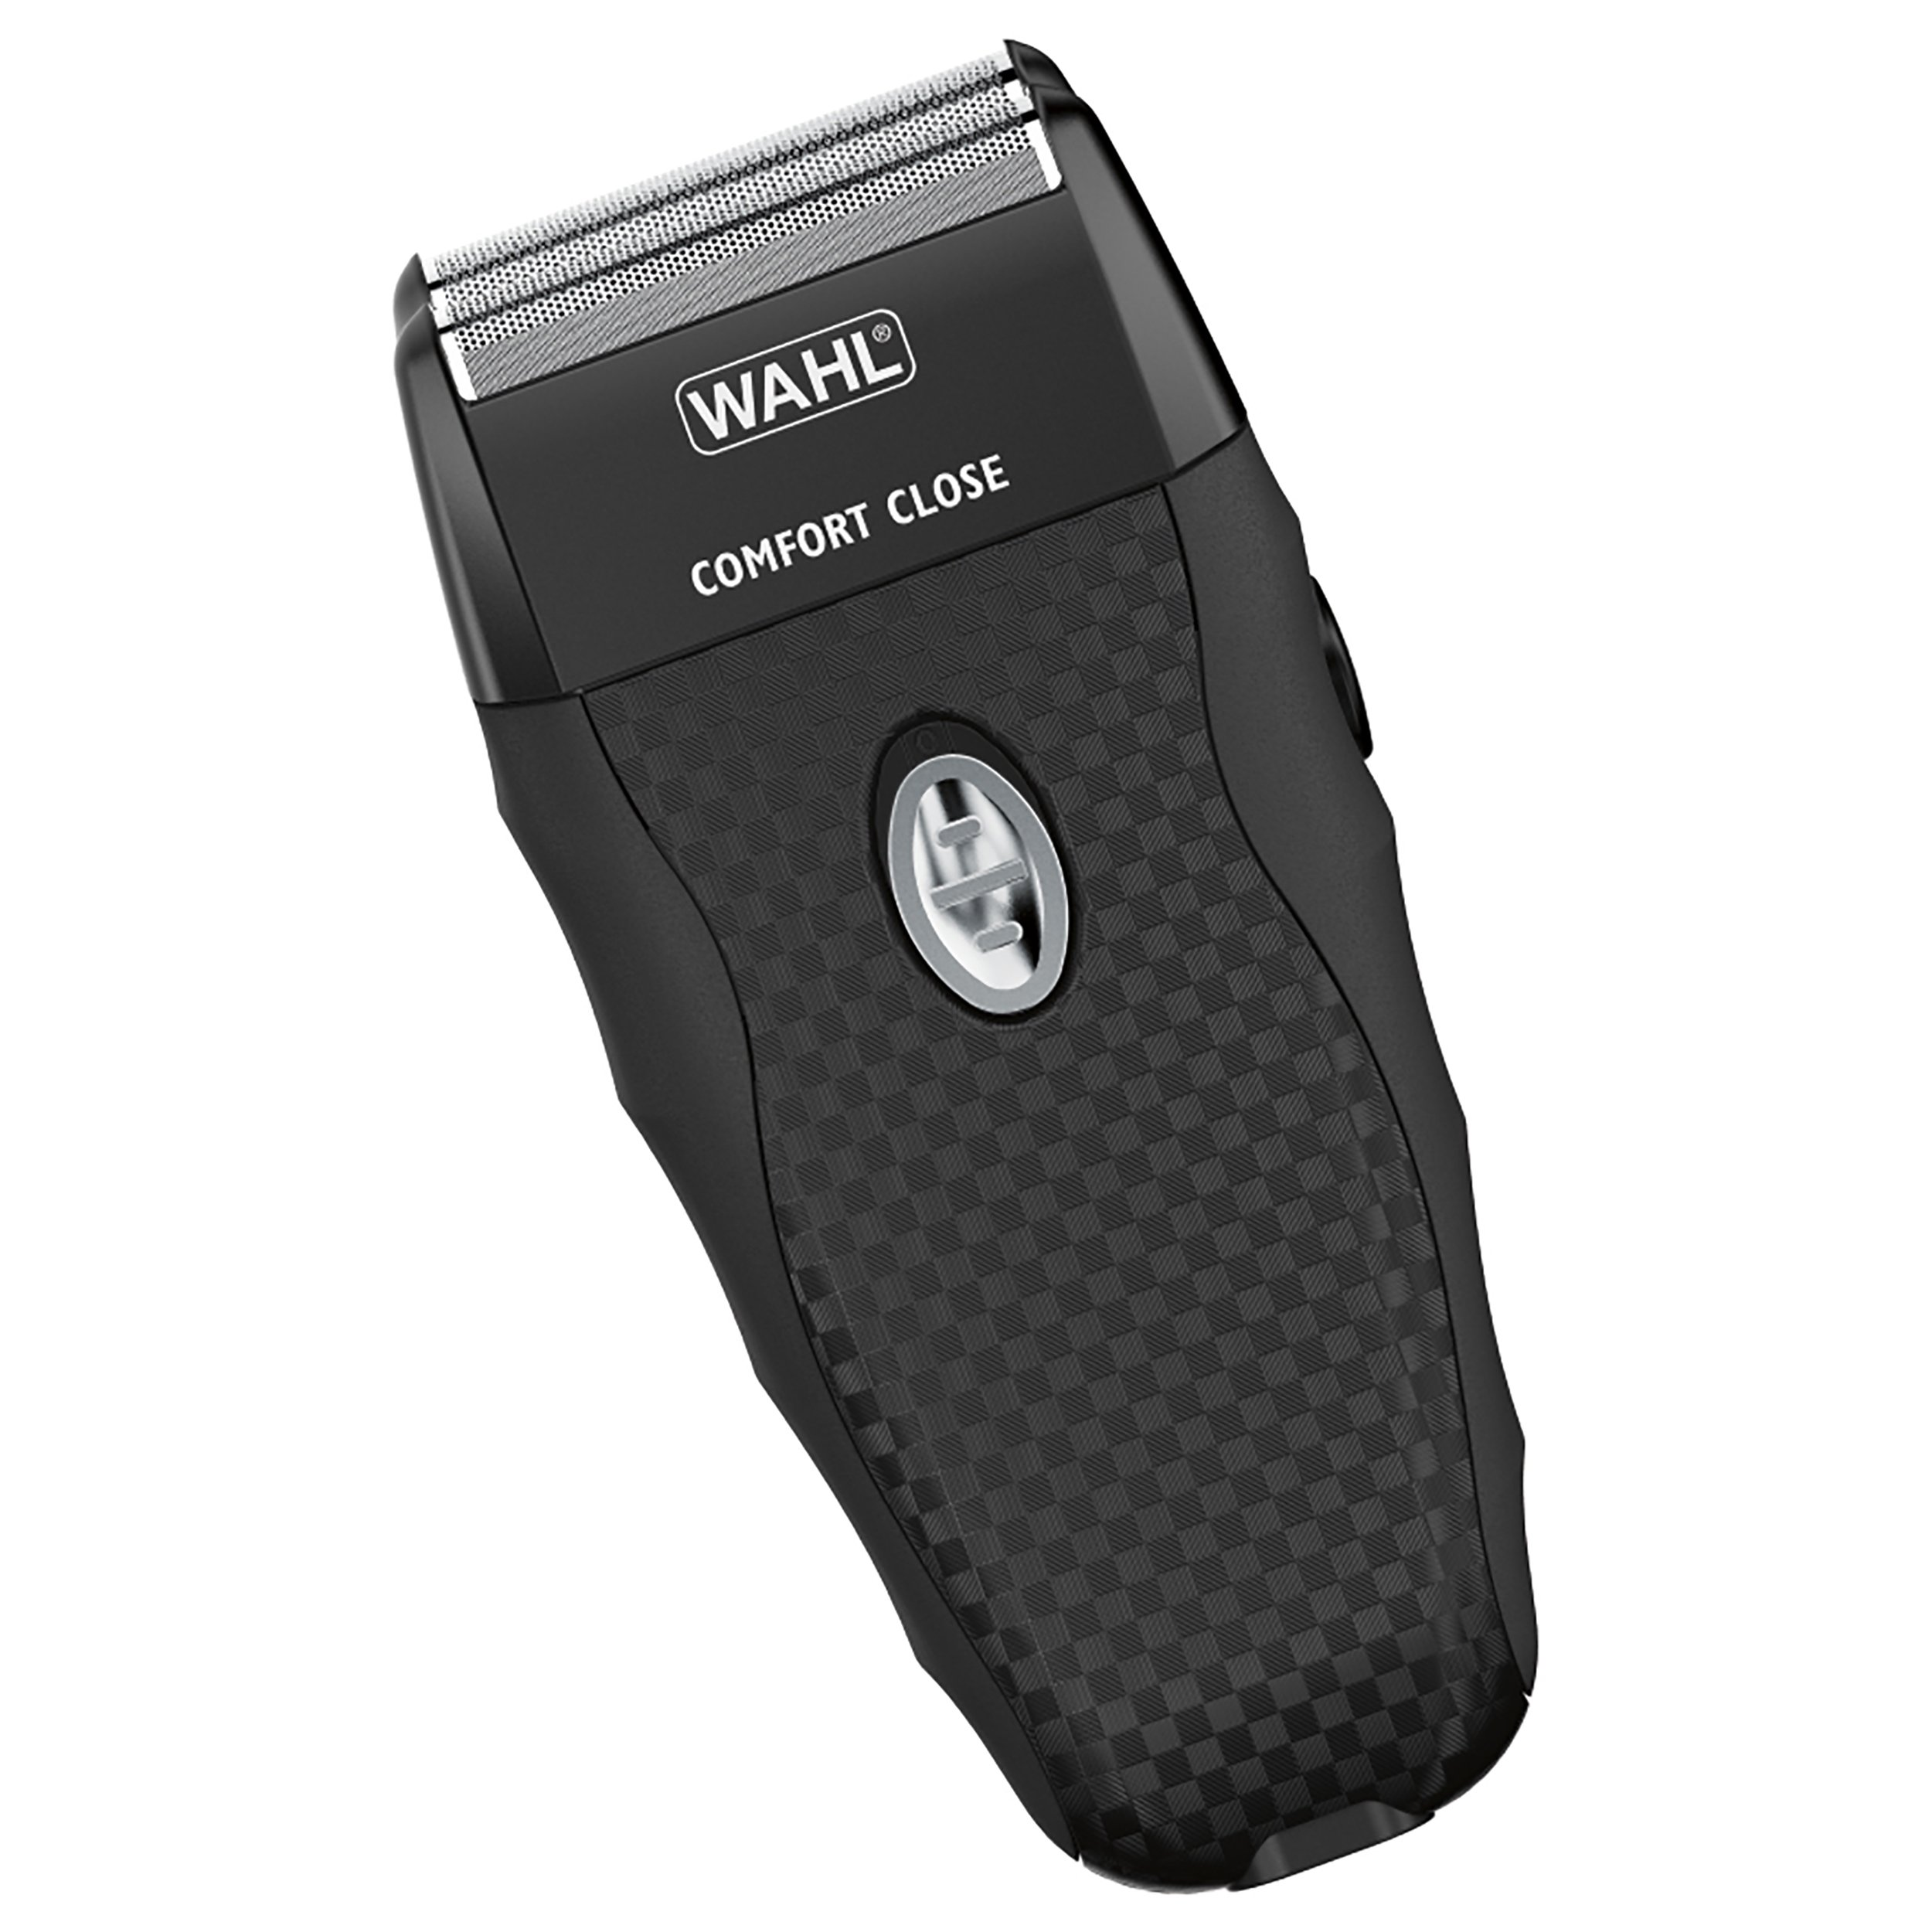 Wahl Flex Shave Rechargeable Foil Shaver #7367-400 by Wahl Clipper